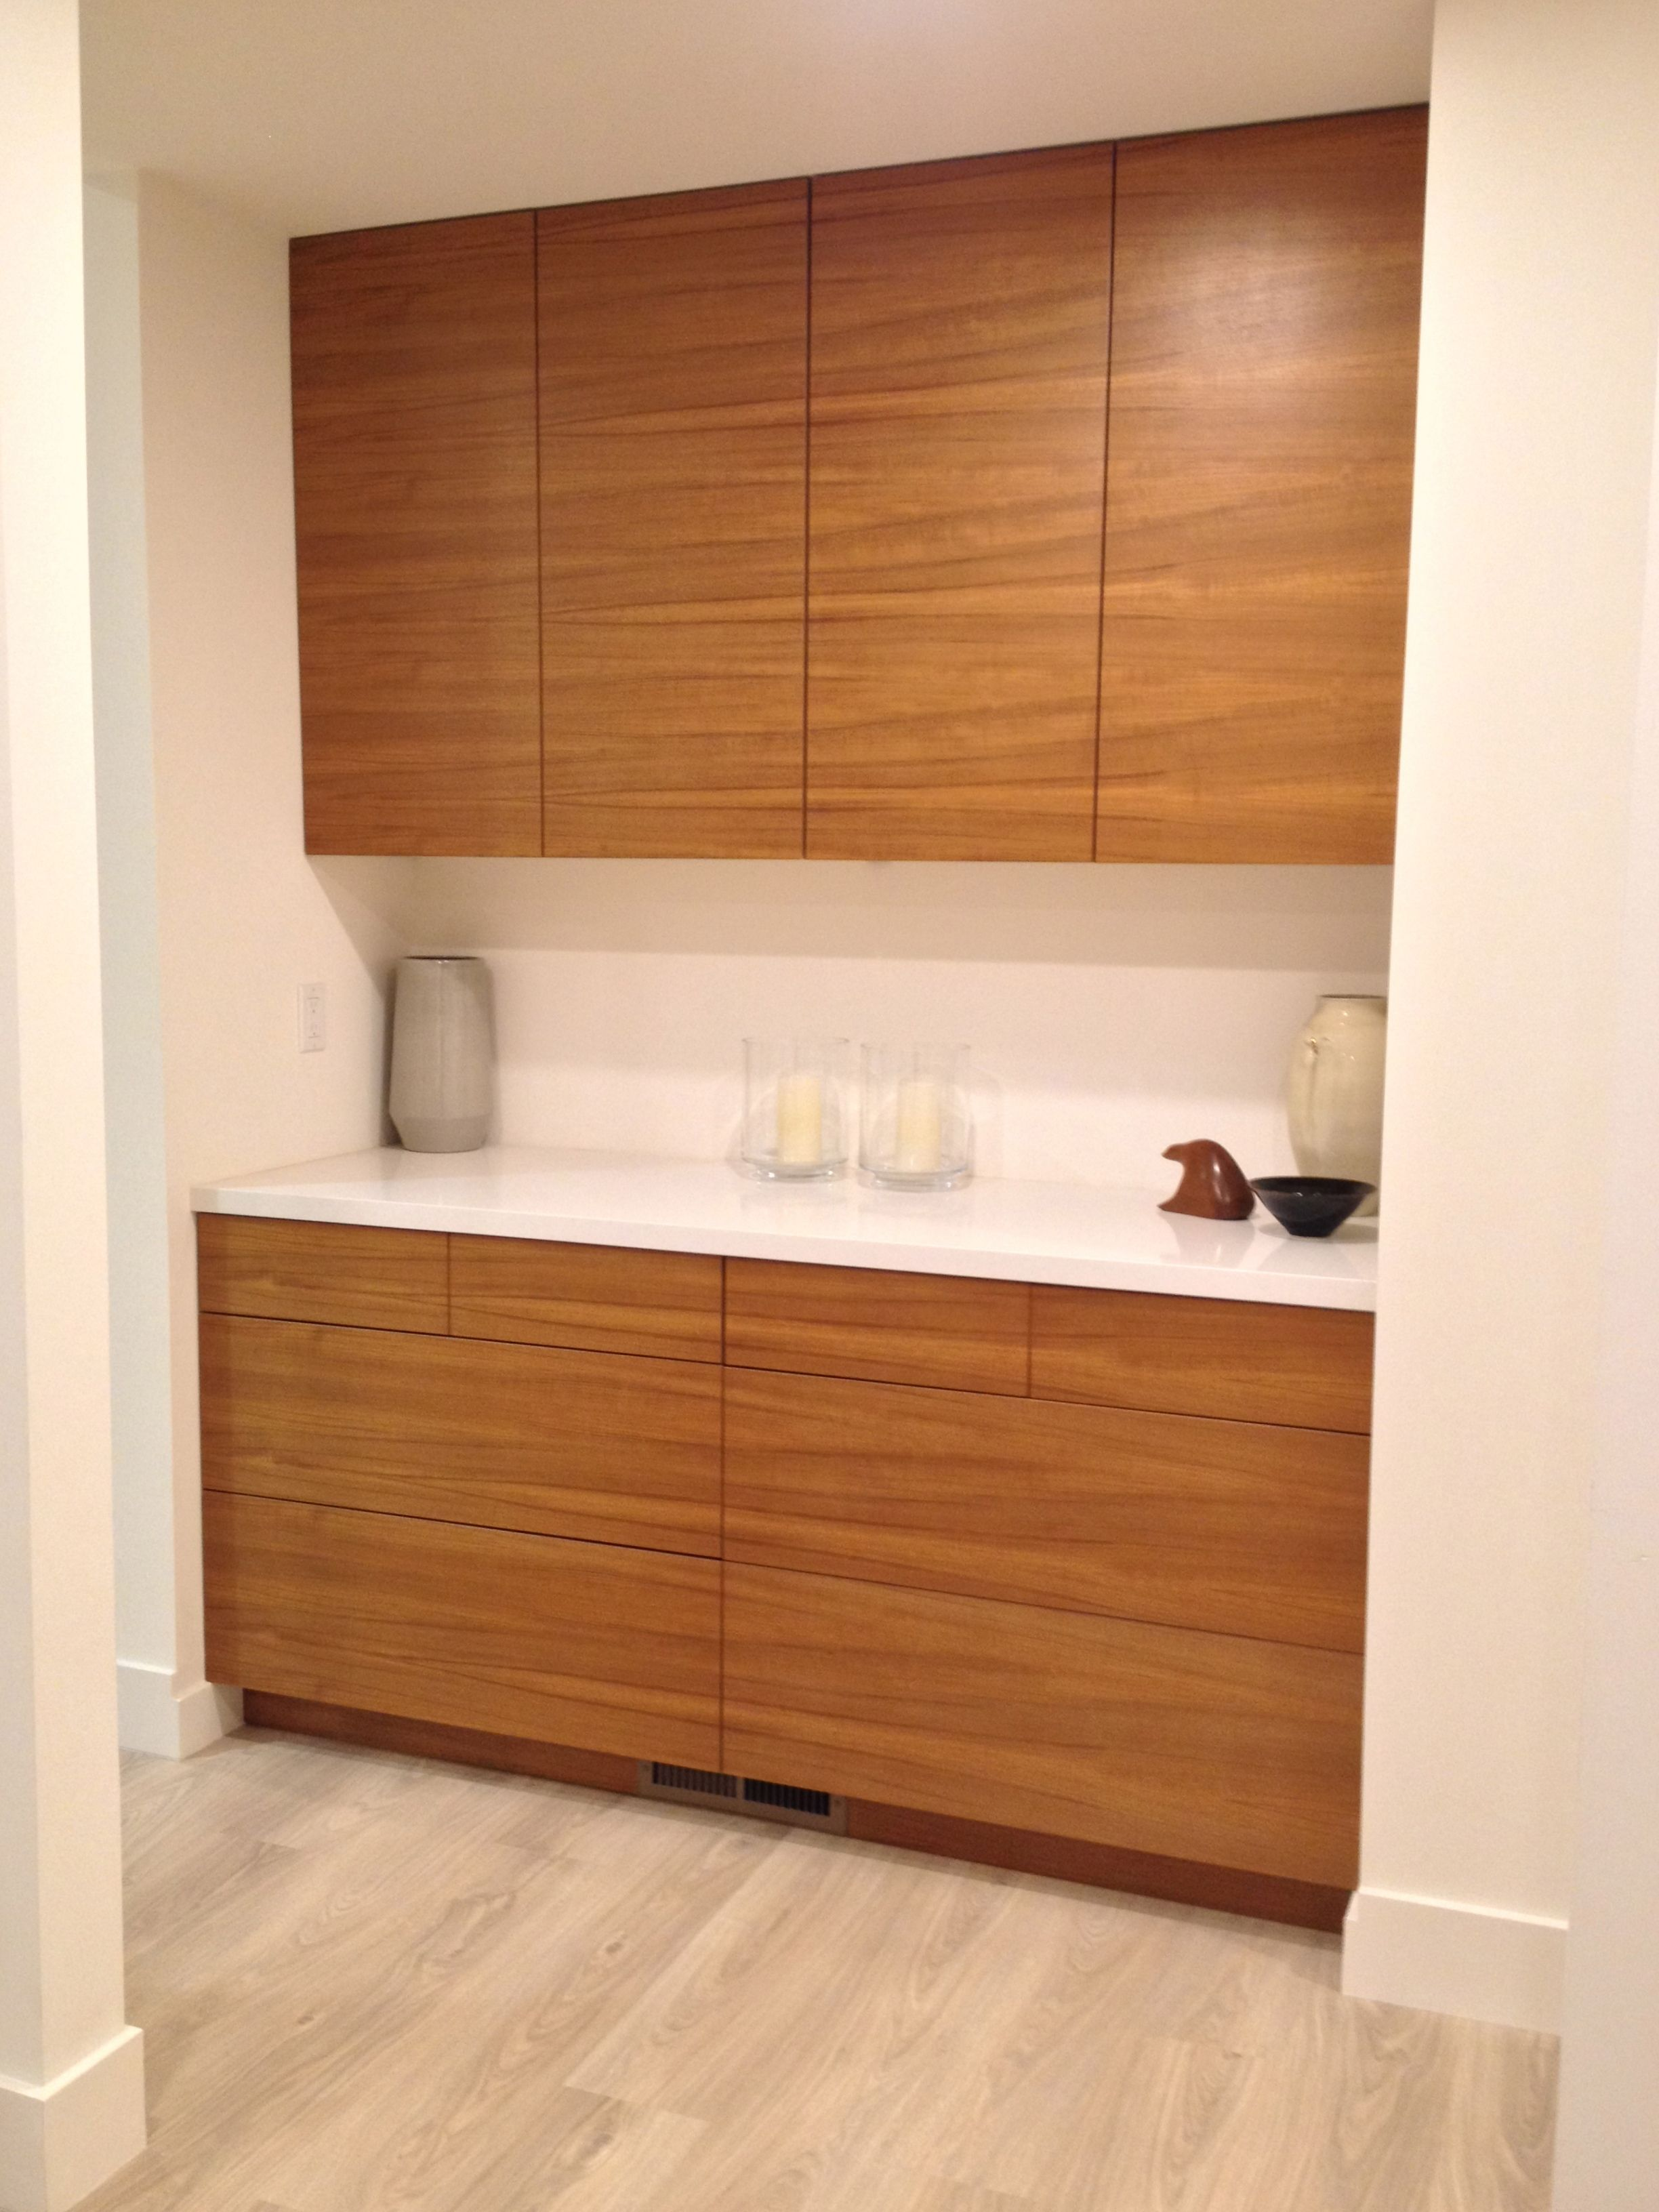 IKEA kitchen with Semihandmade Flatsawn Teak fronts